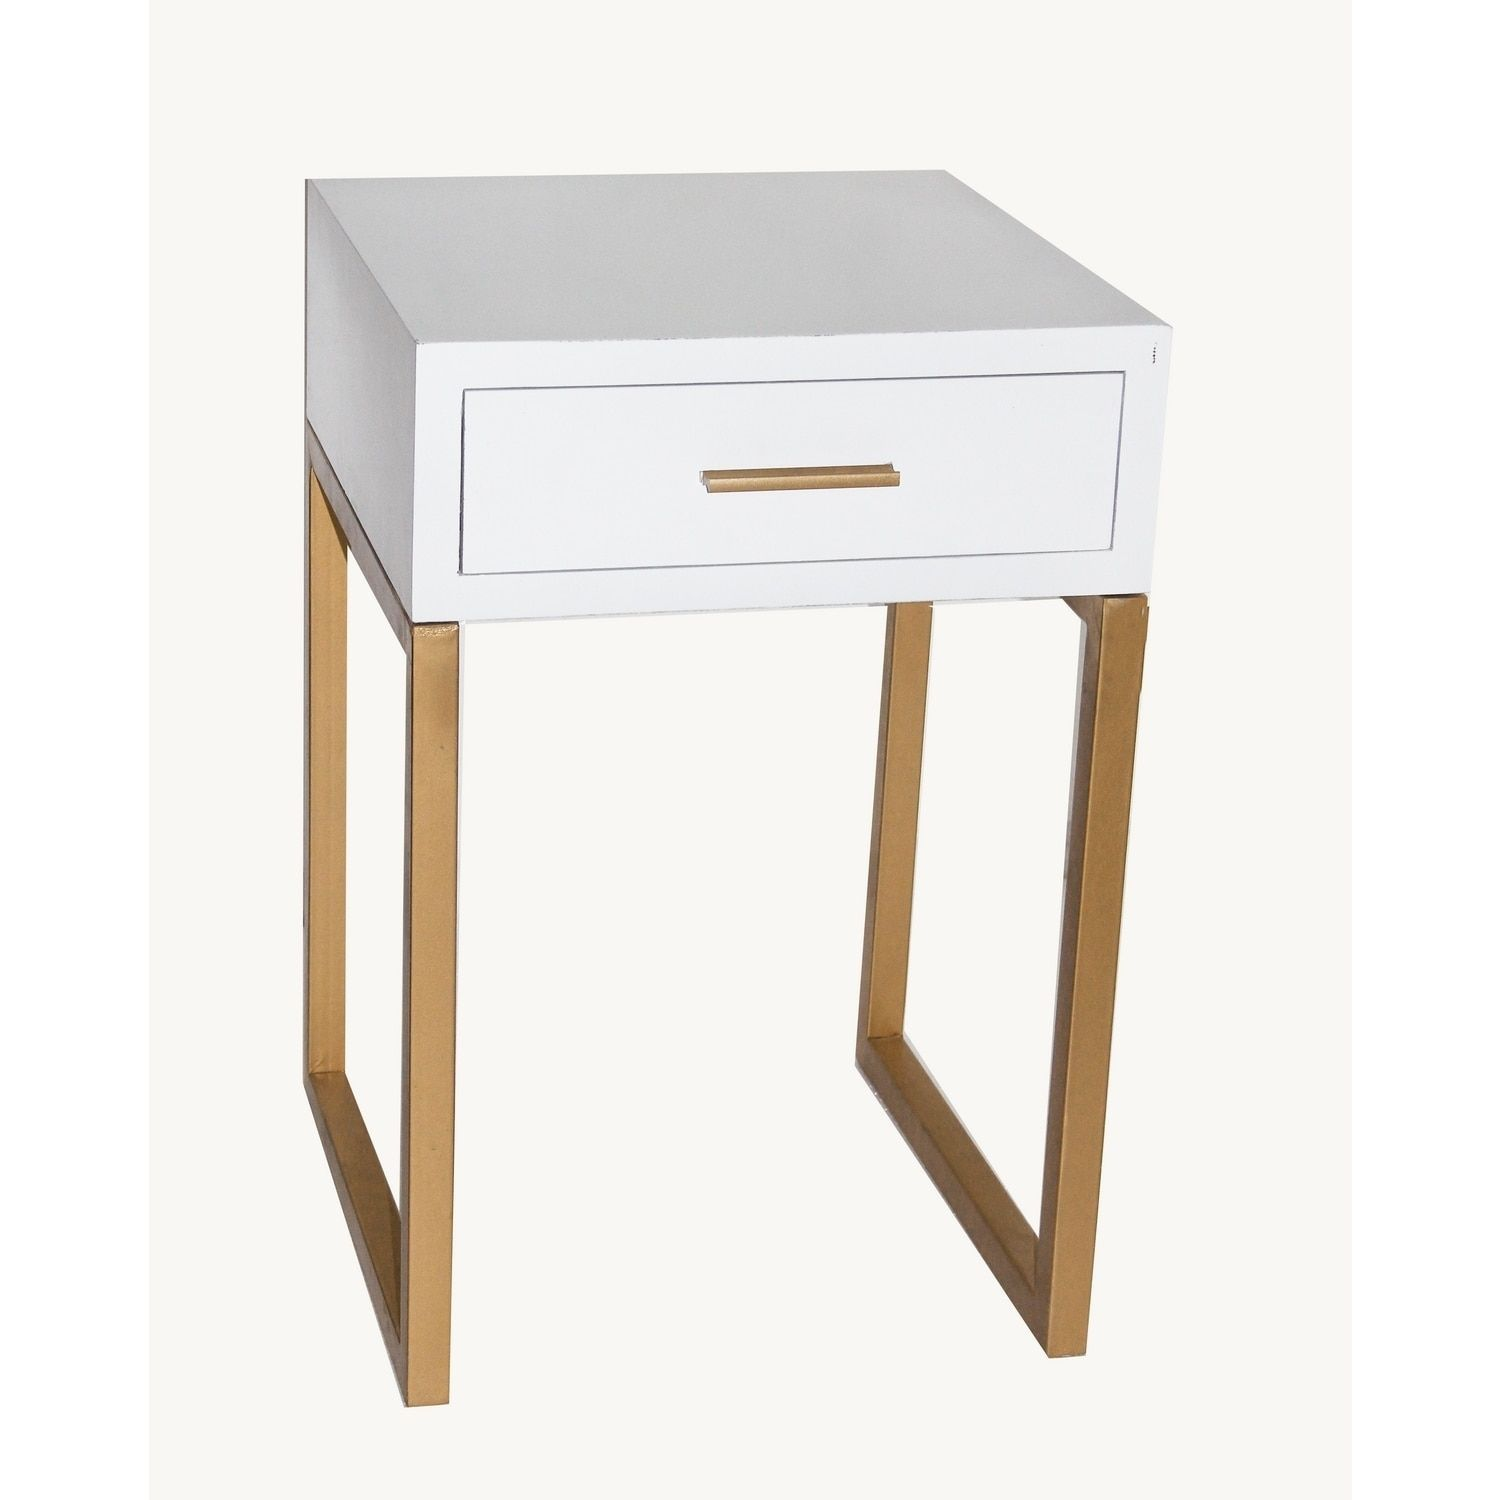 Metal Wood 16 Inch X 16 Inch X 24 Inch 1 Drawer Accent Table